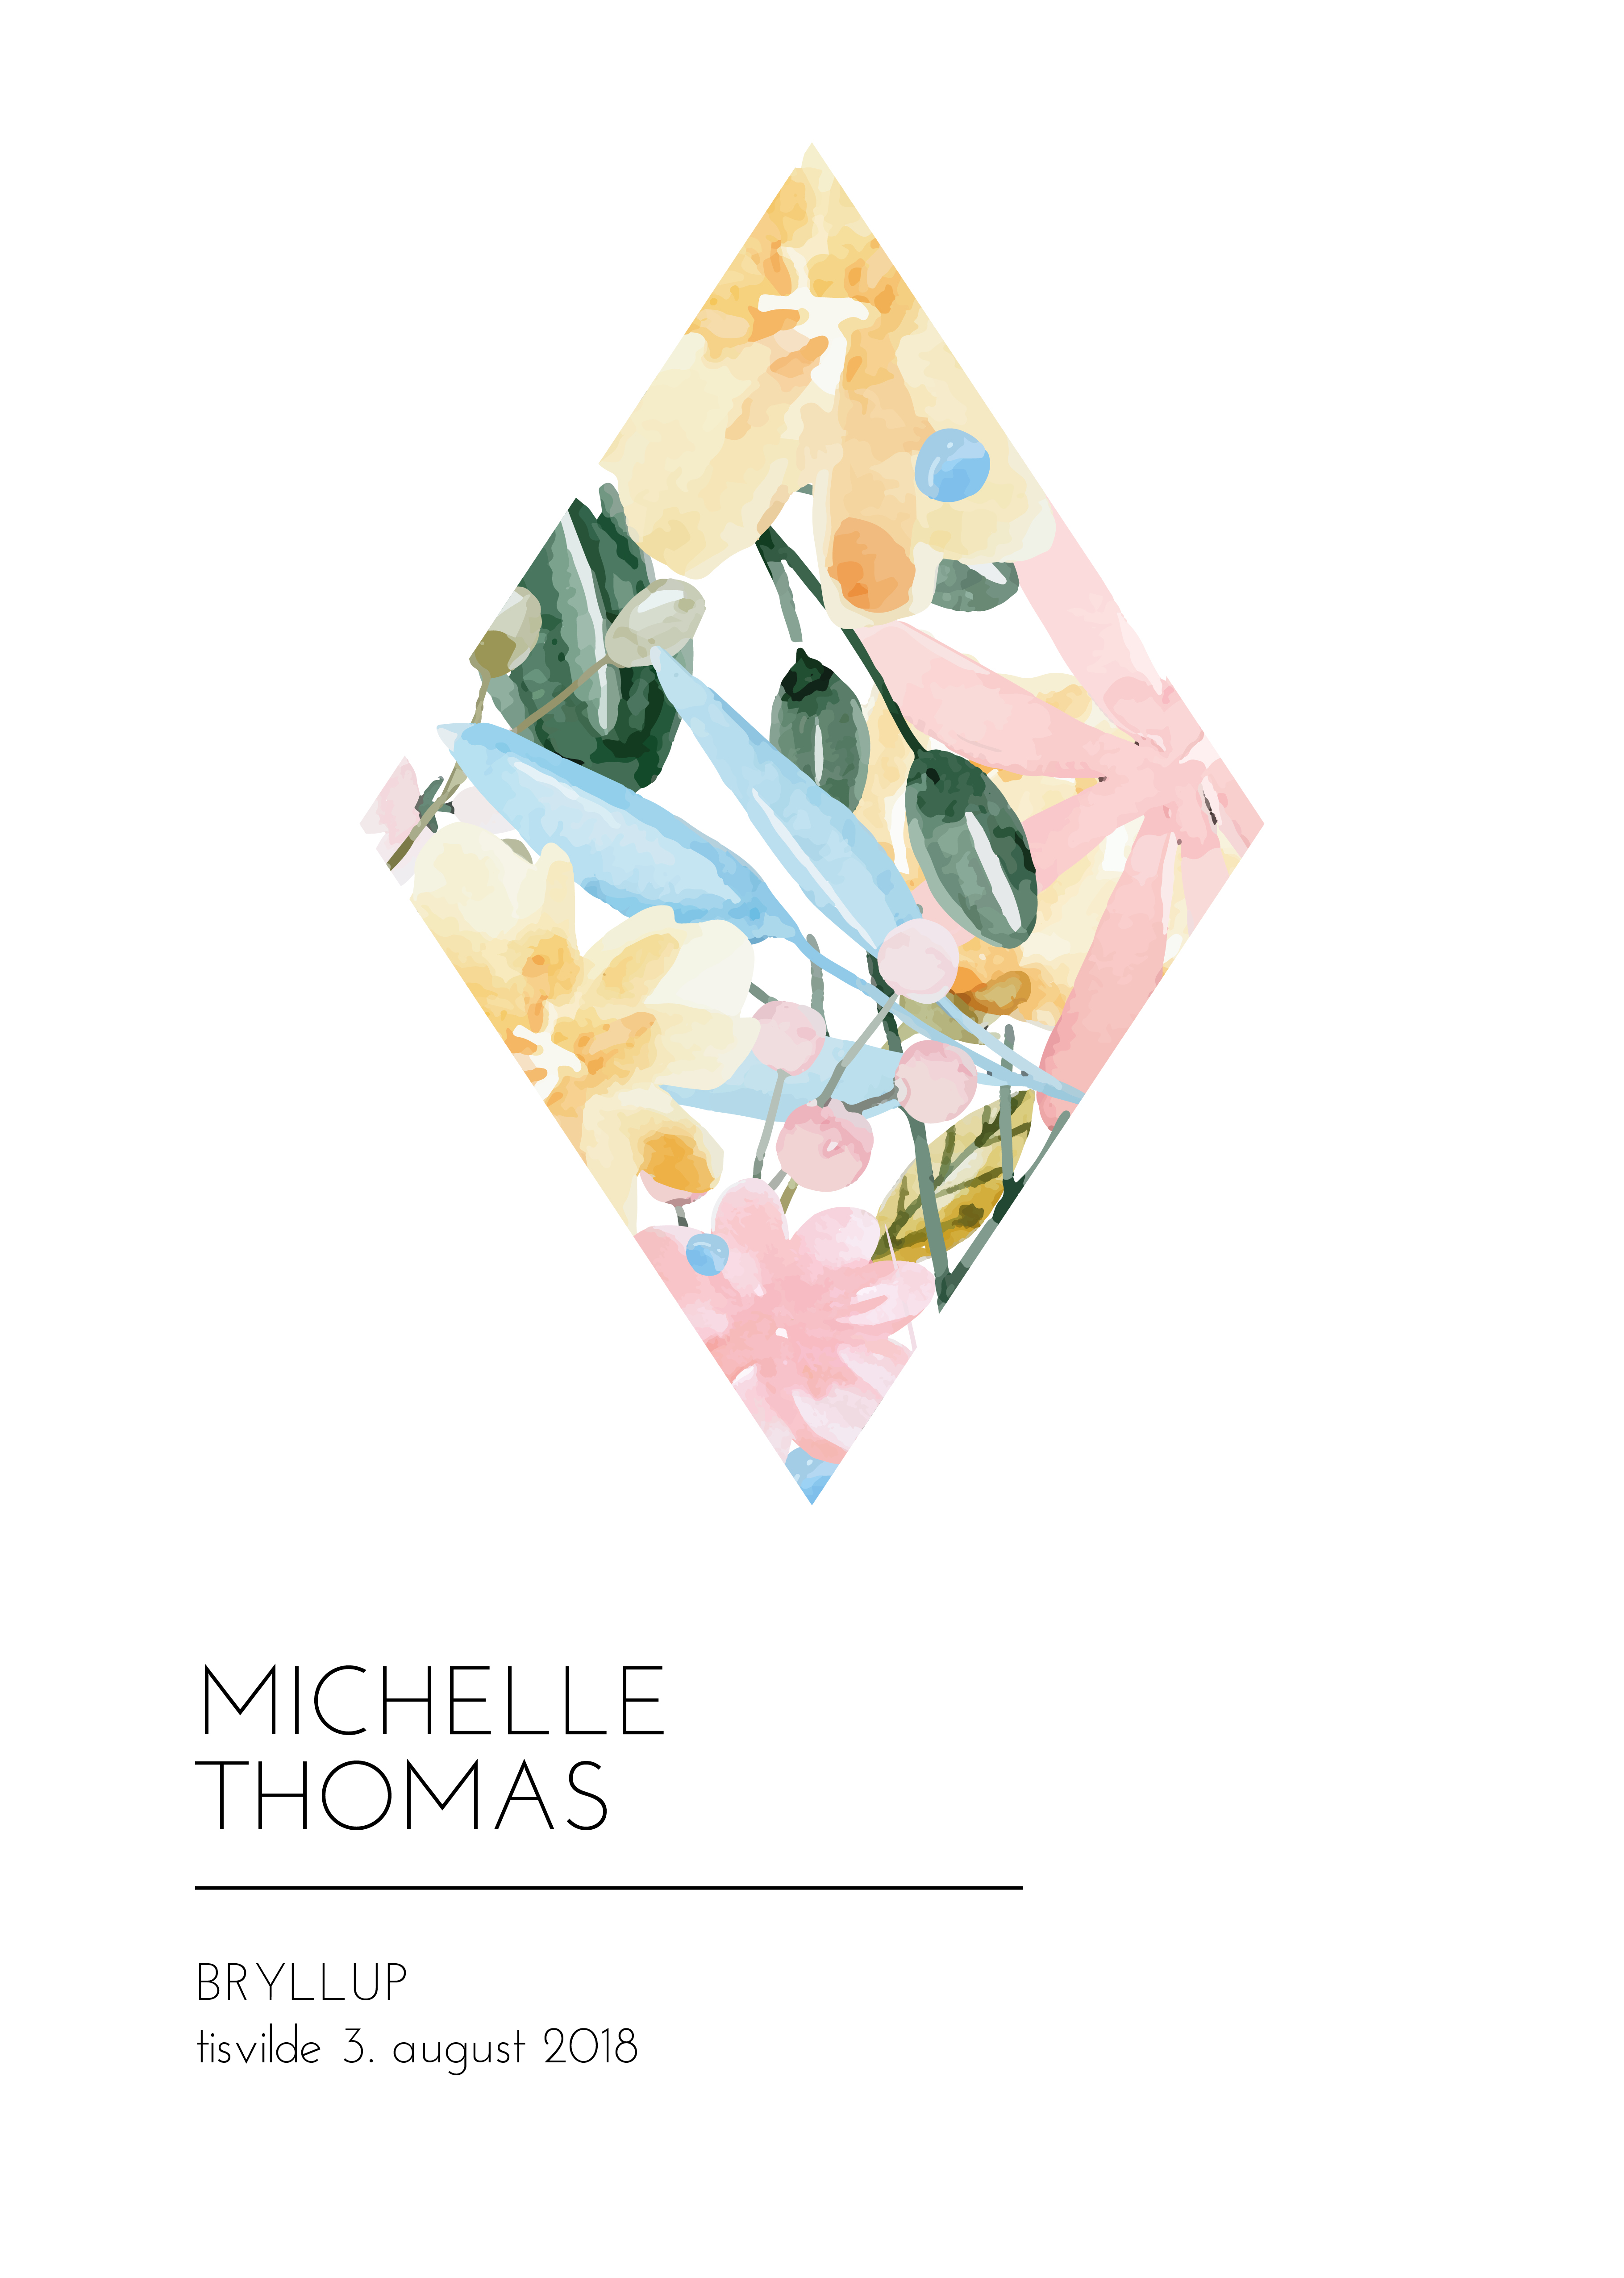 /site/resources/images/card-photos/card-thumbnails/Michelle & Thomas/7c29c02df5ca8e3e34b53513648d9cdd_front_thumb.jpg